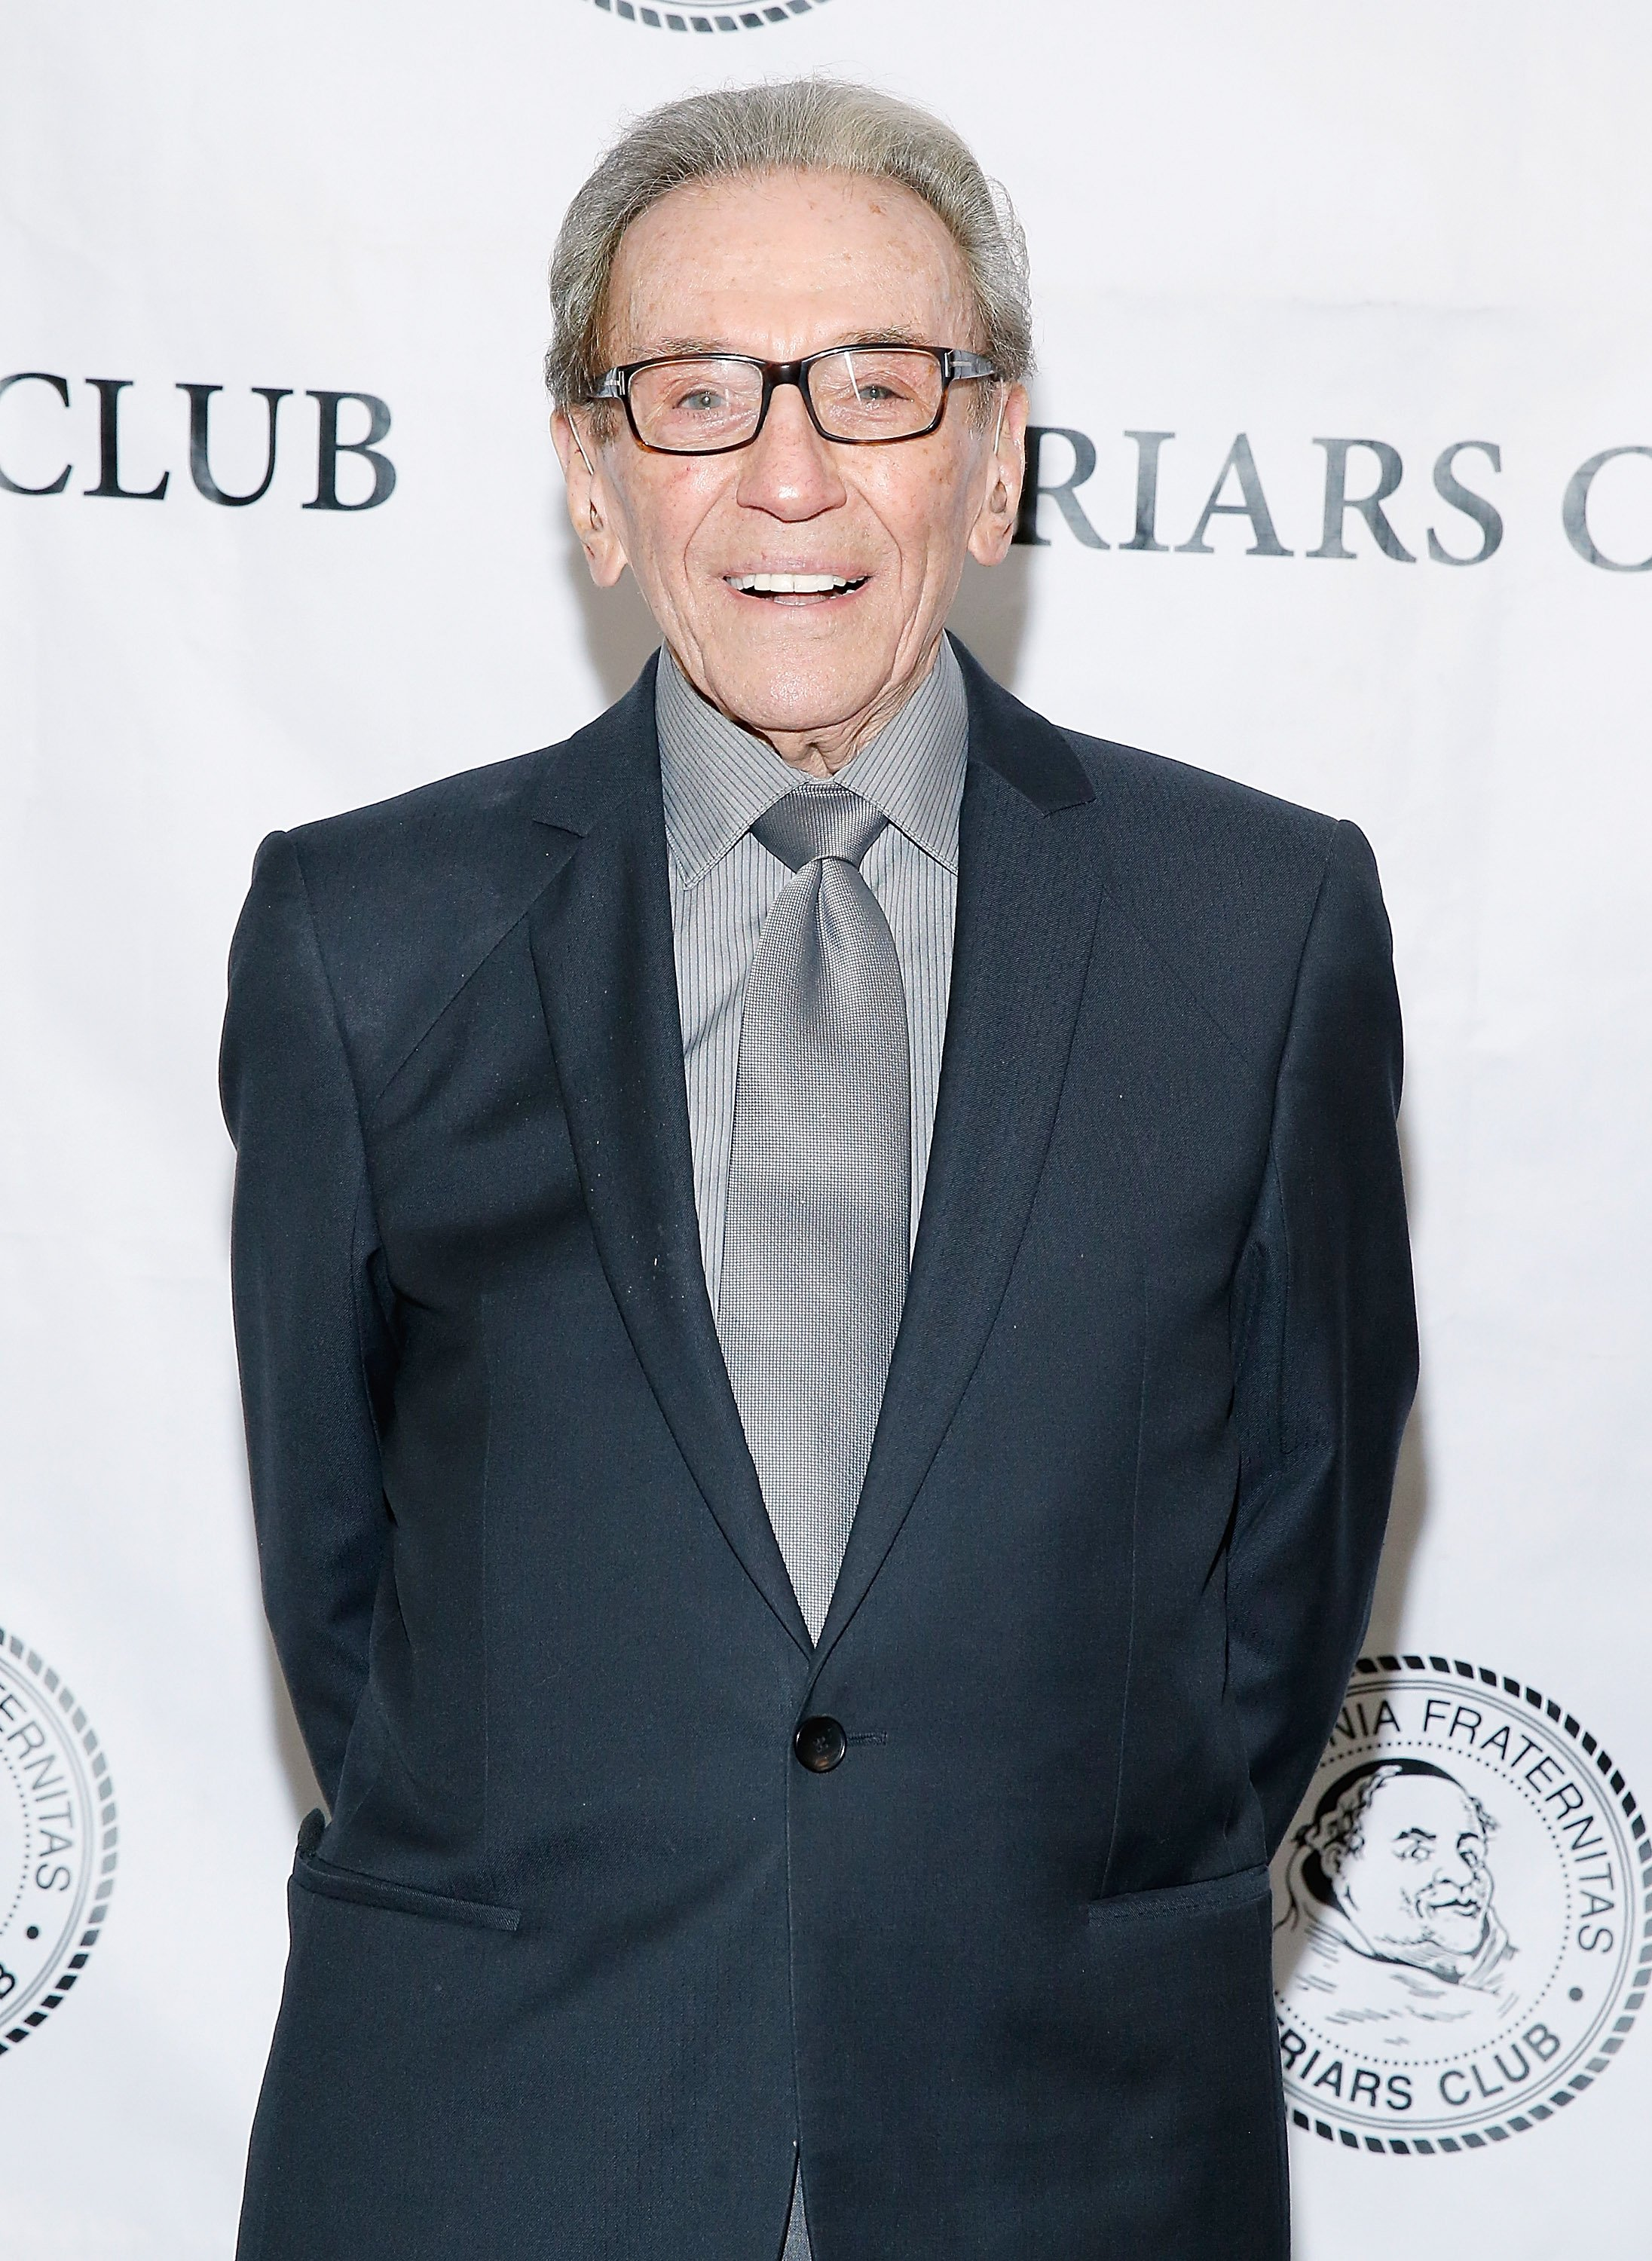 Norm Crosby attends The Friars Club Salute on April 21, 2014, in New York City.   Source: Getty Images.